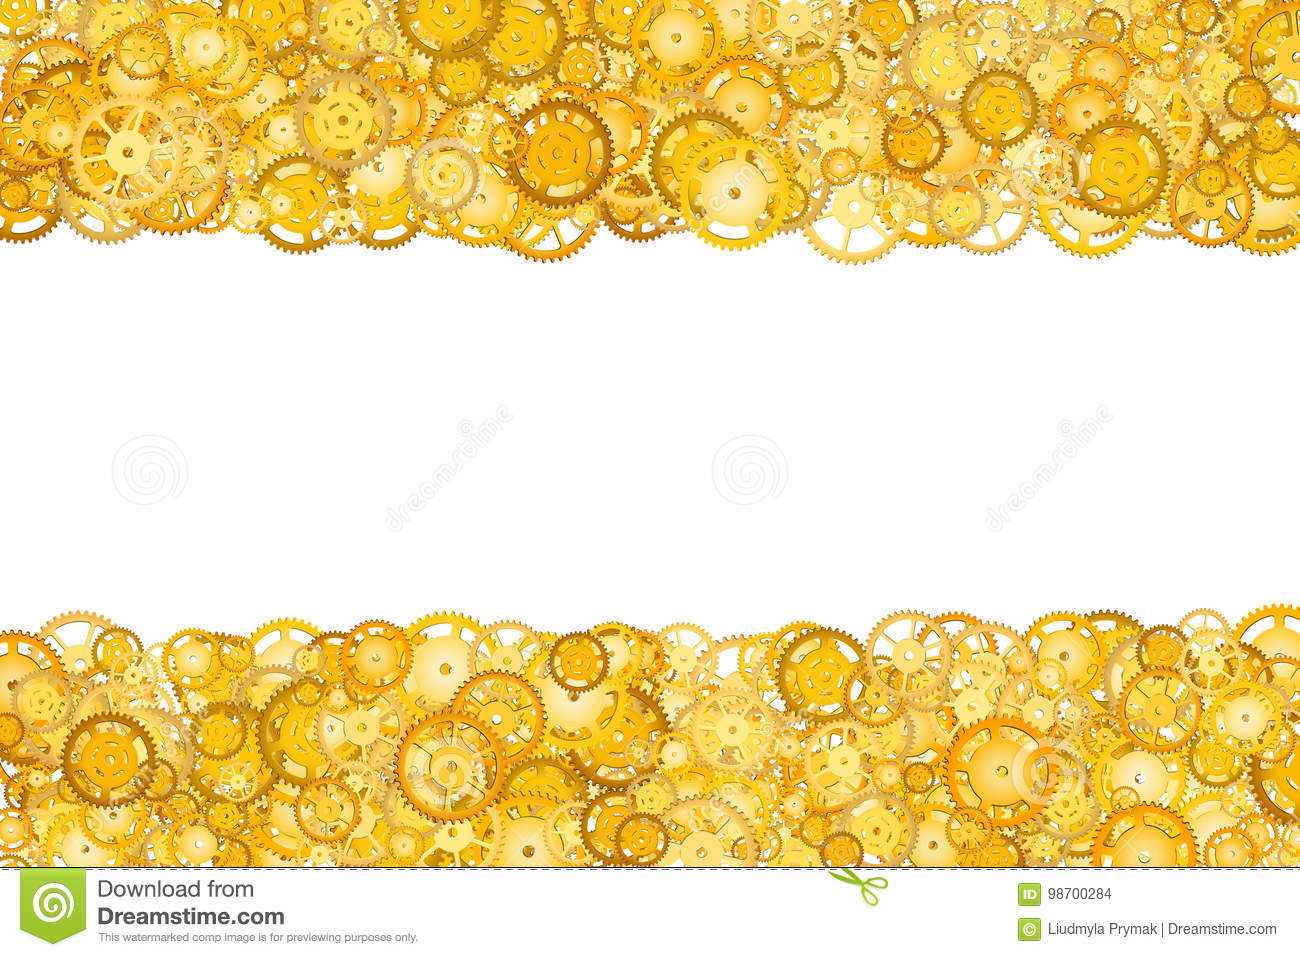 Border with many gears. Golden frame of gears. Technological frame. Mechanical design. Yellow cogs.